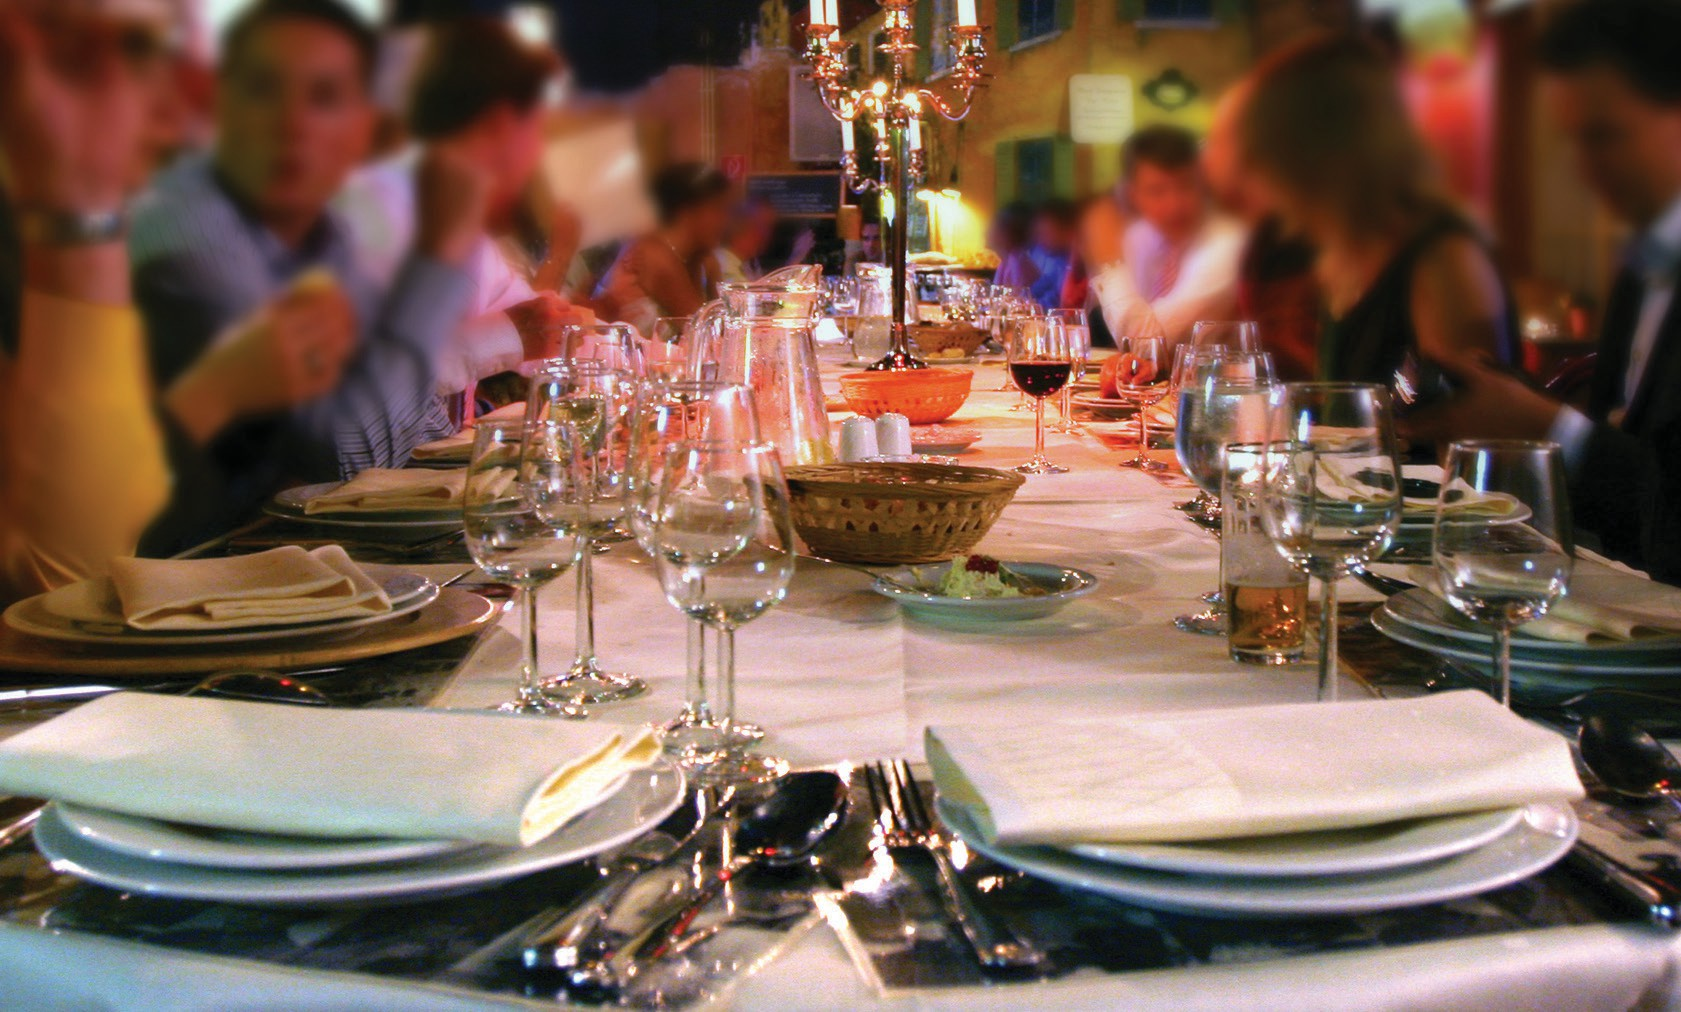 Dine Out Escondido! restaurant week is better than ever with thirty local restaurant participants.